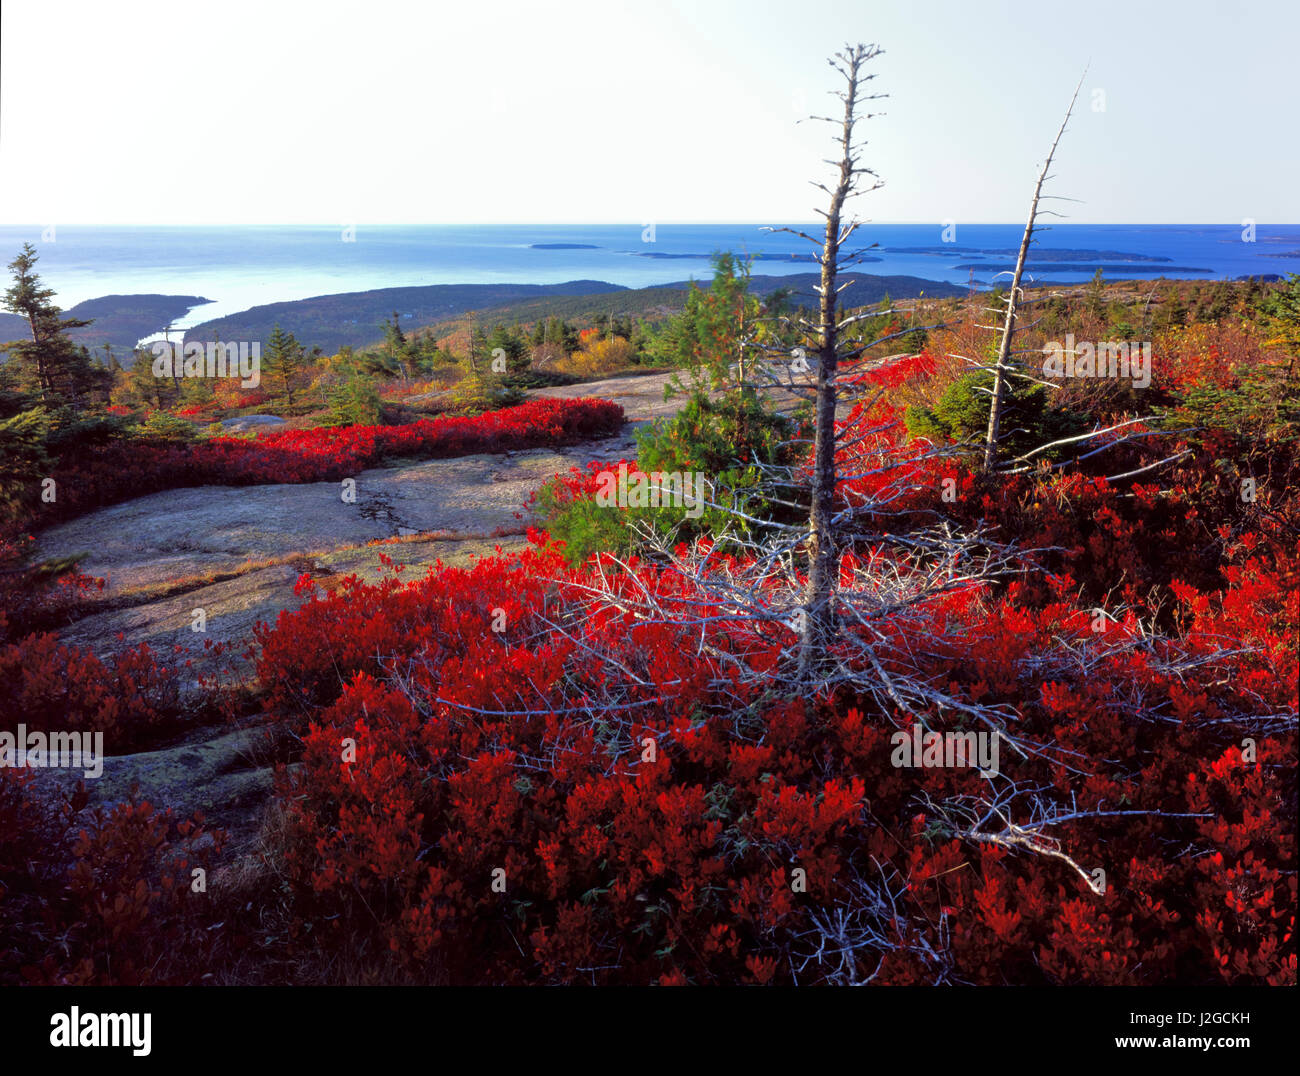 Acadia National Park, Maine. USA. Scarlet foliage of black huckleberry (Gaylussacia baccata) surrounds pine snag - Stock Image